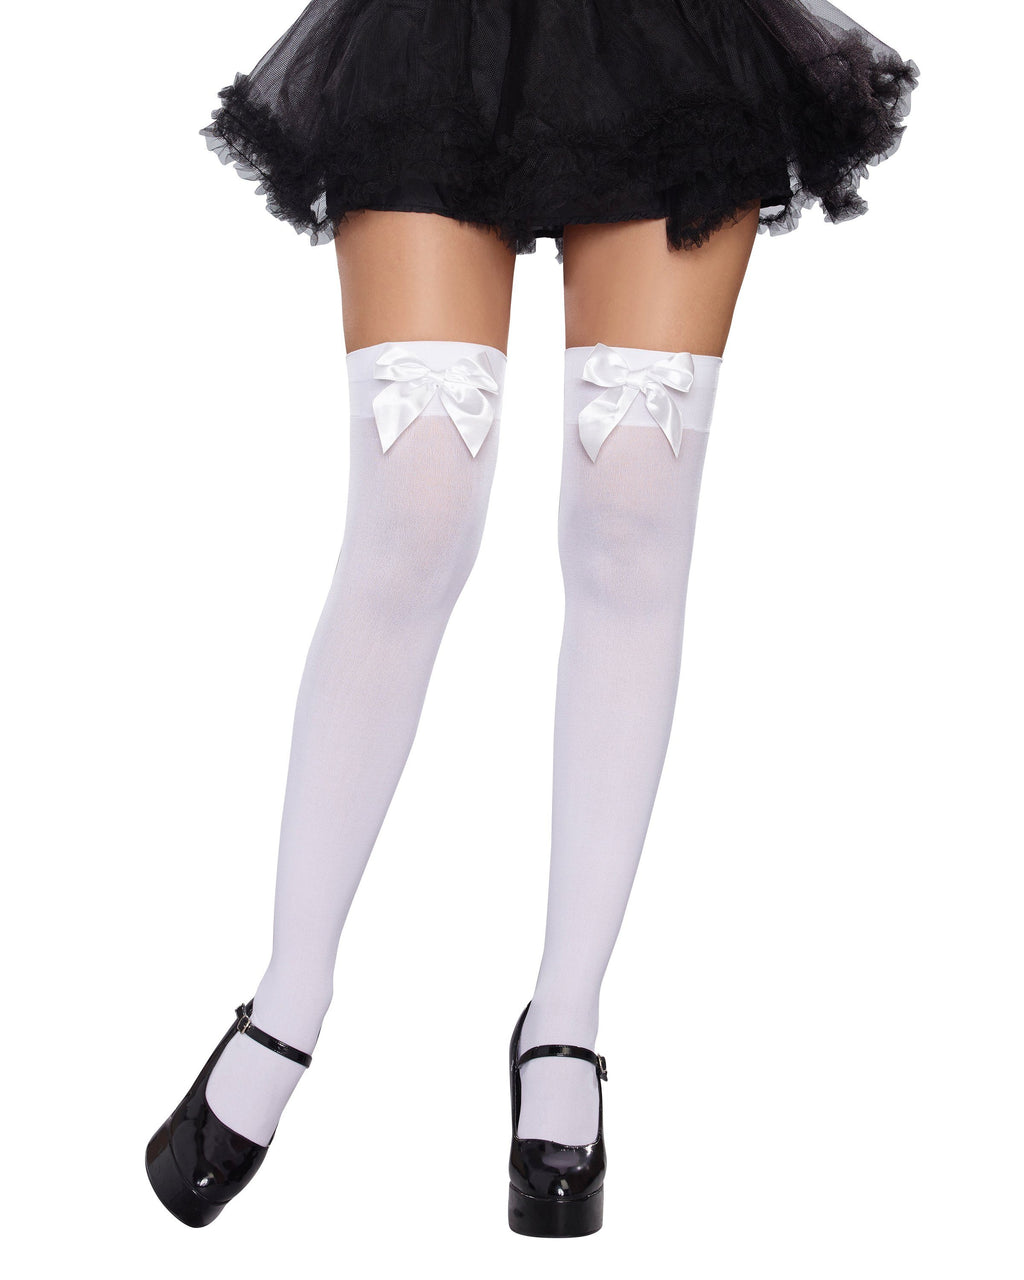 Versatile Bow Top Stockings Costume Hosiery Dreamgirl Costume One Size White